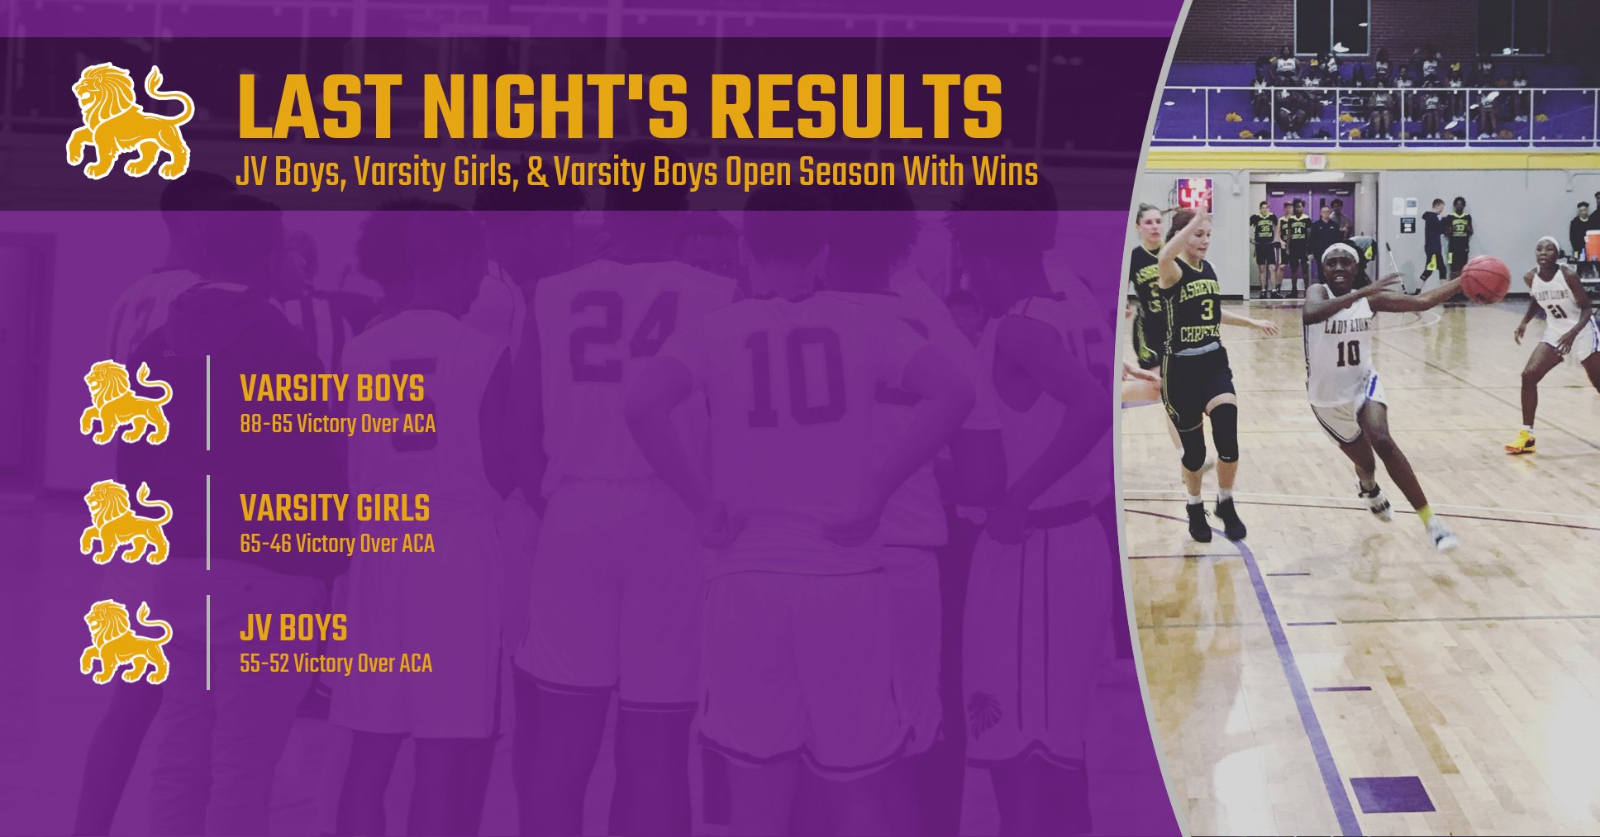 LEC Winter Sports Open Season with 3 Victories